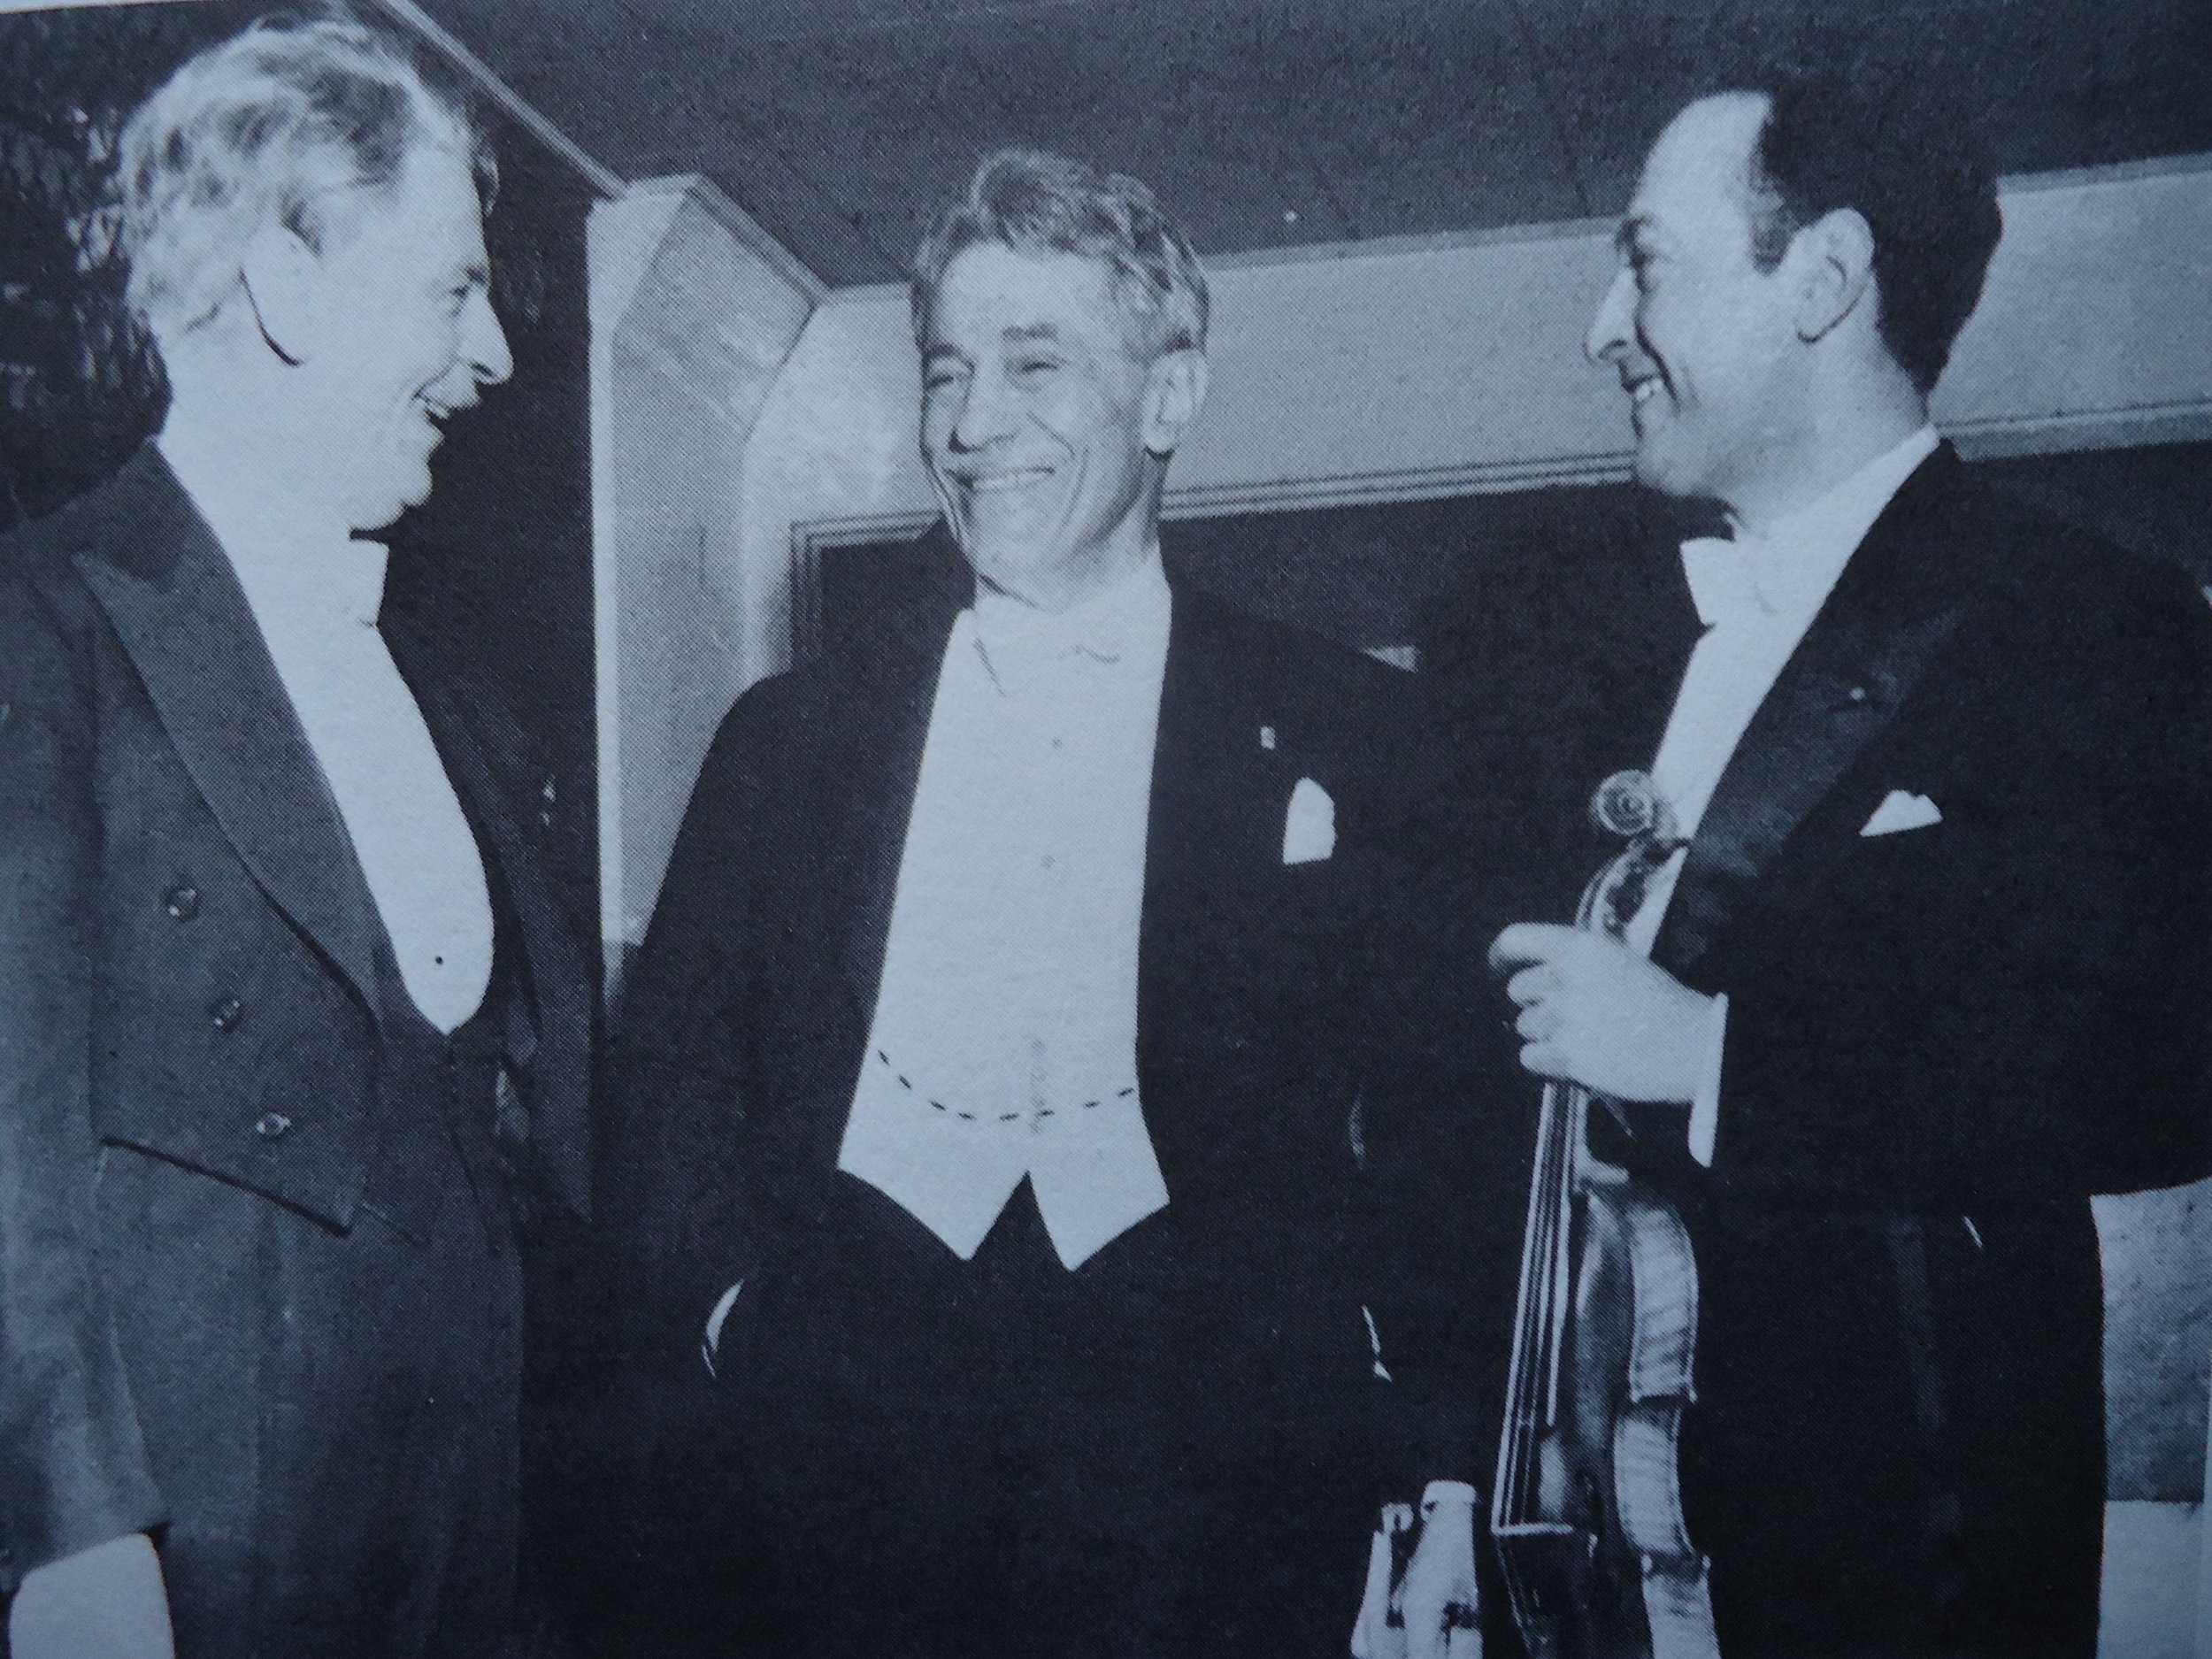 Spalding, Kreisler, and Heifetz